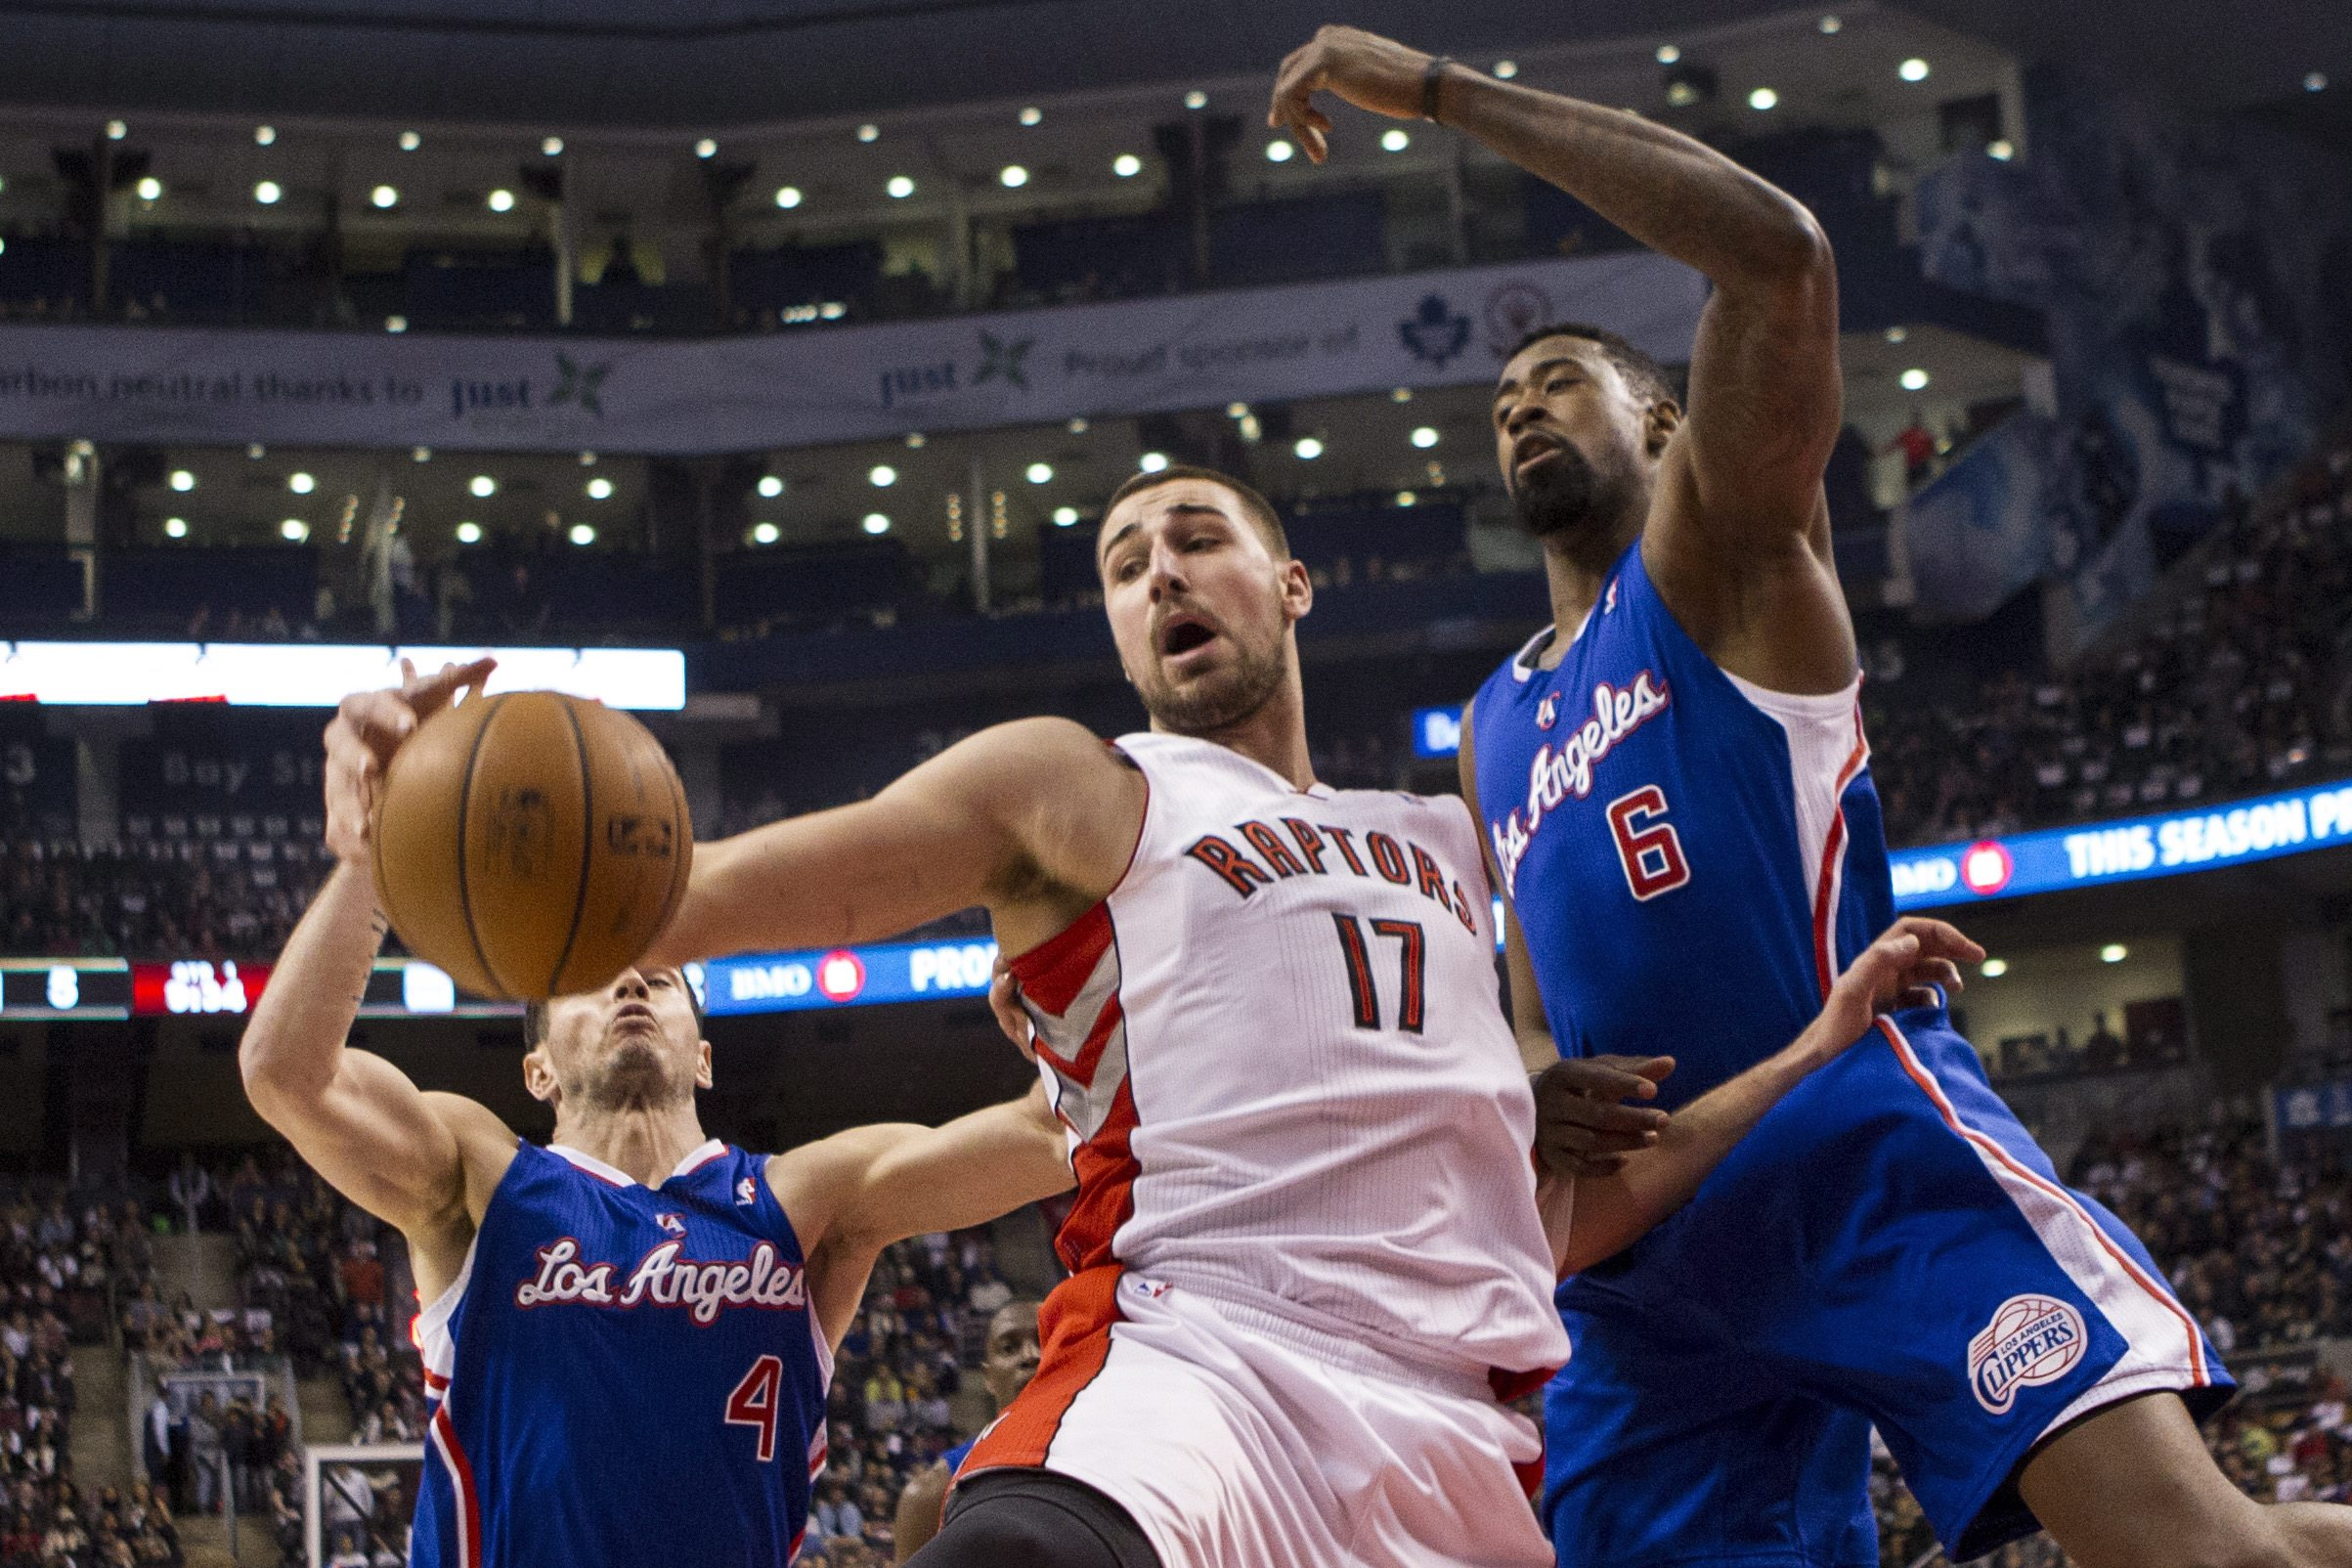 Toronto Raptors' Jonas Valanciunas, center, fights for a loose ball with Los Angeles Clippers DeAndre Jordan, right, and J.J. Redick during the first half of an NBA basketball game, Saturday, Jan. 25, 2014 in Toronto